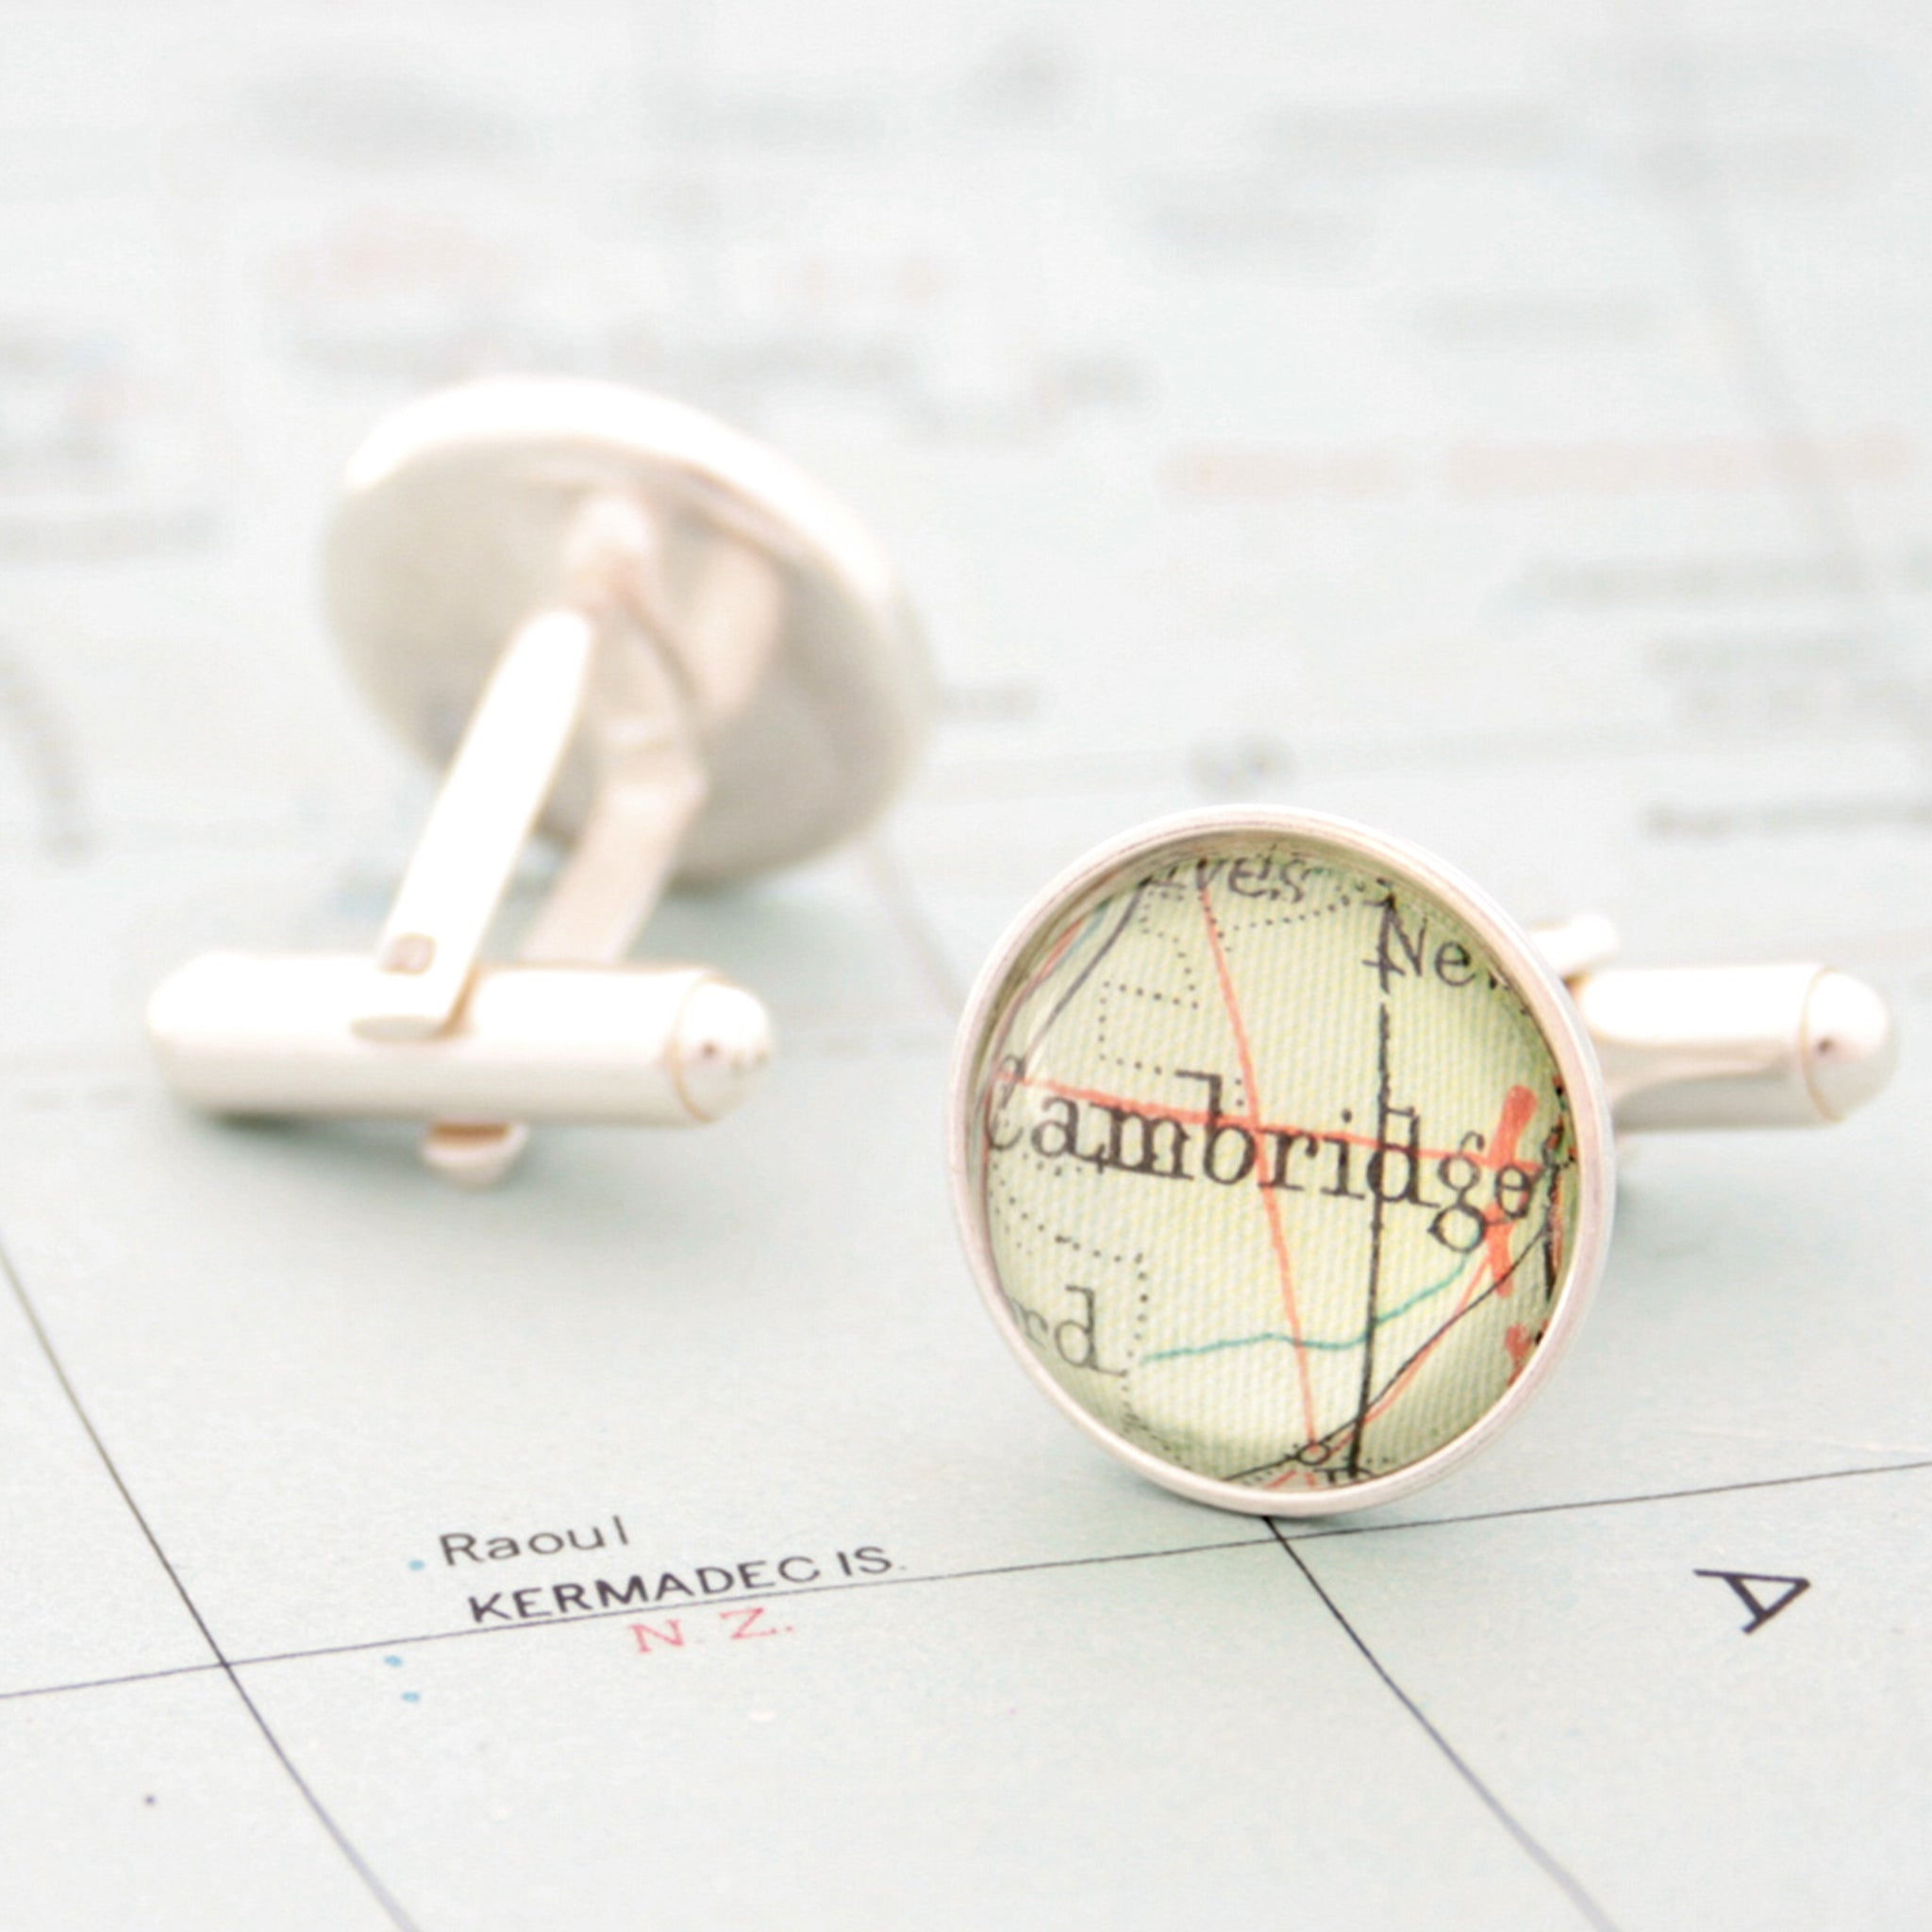 Sterling silver Personalised map cufflinks featuring maps of Cambridge and Leamington Spa